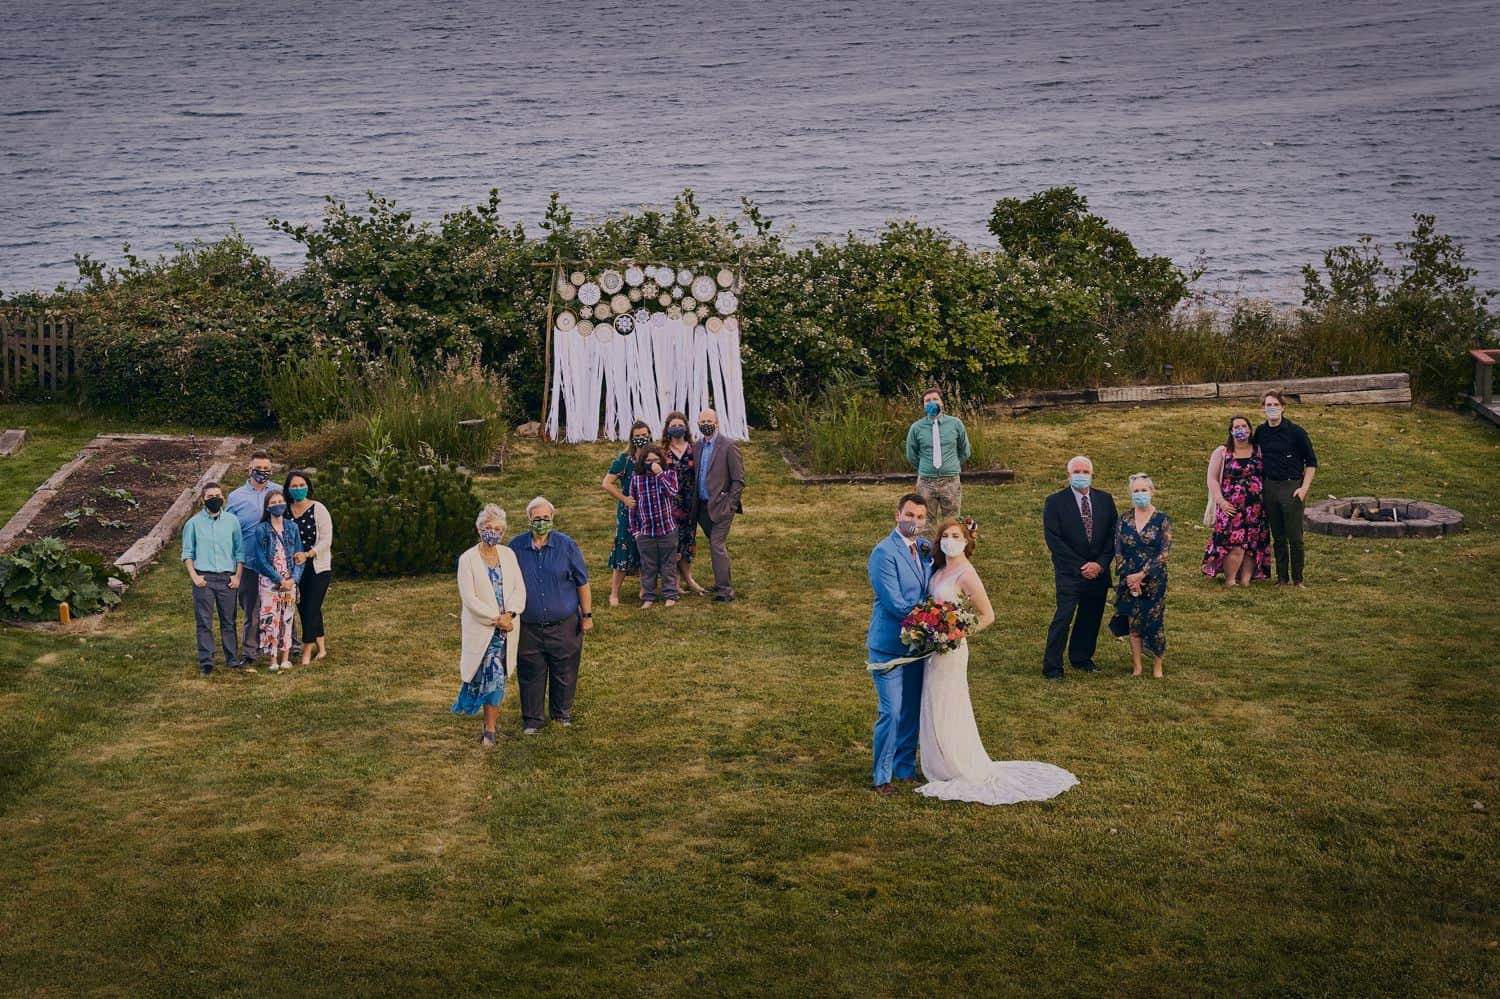 A socially distanced family portrait in a large seaside field after an outdoor wedding during COVID-19